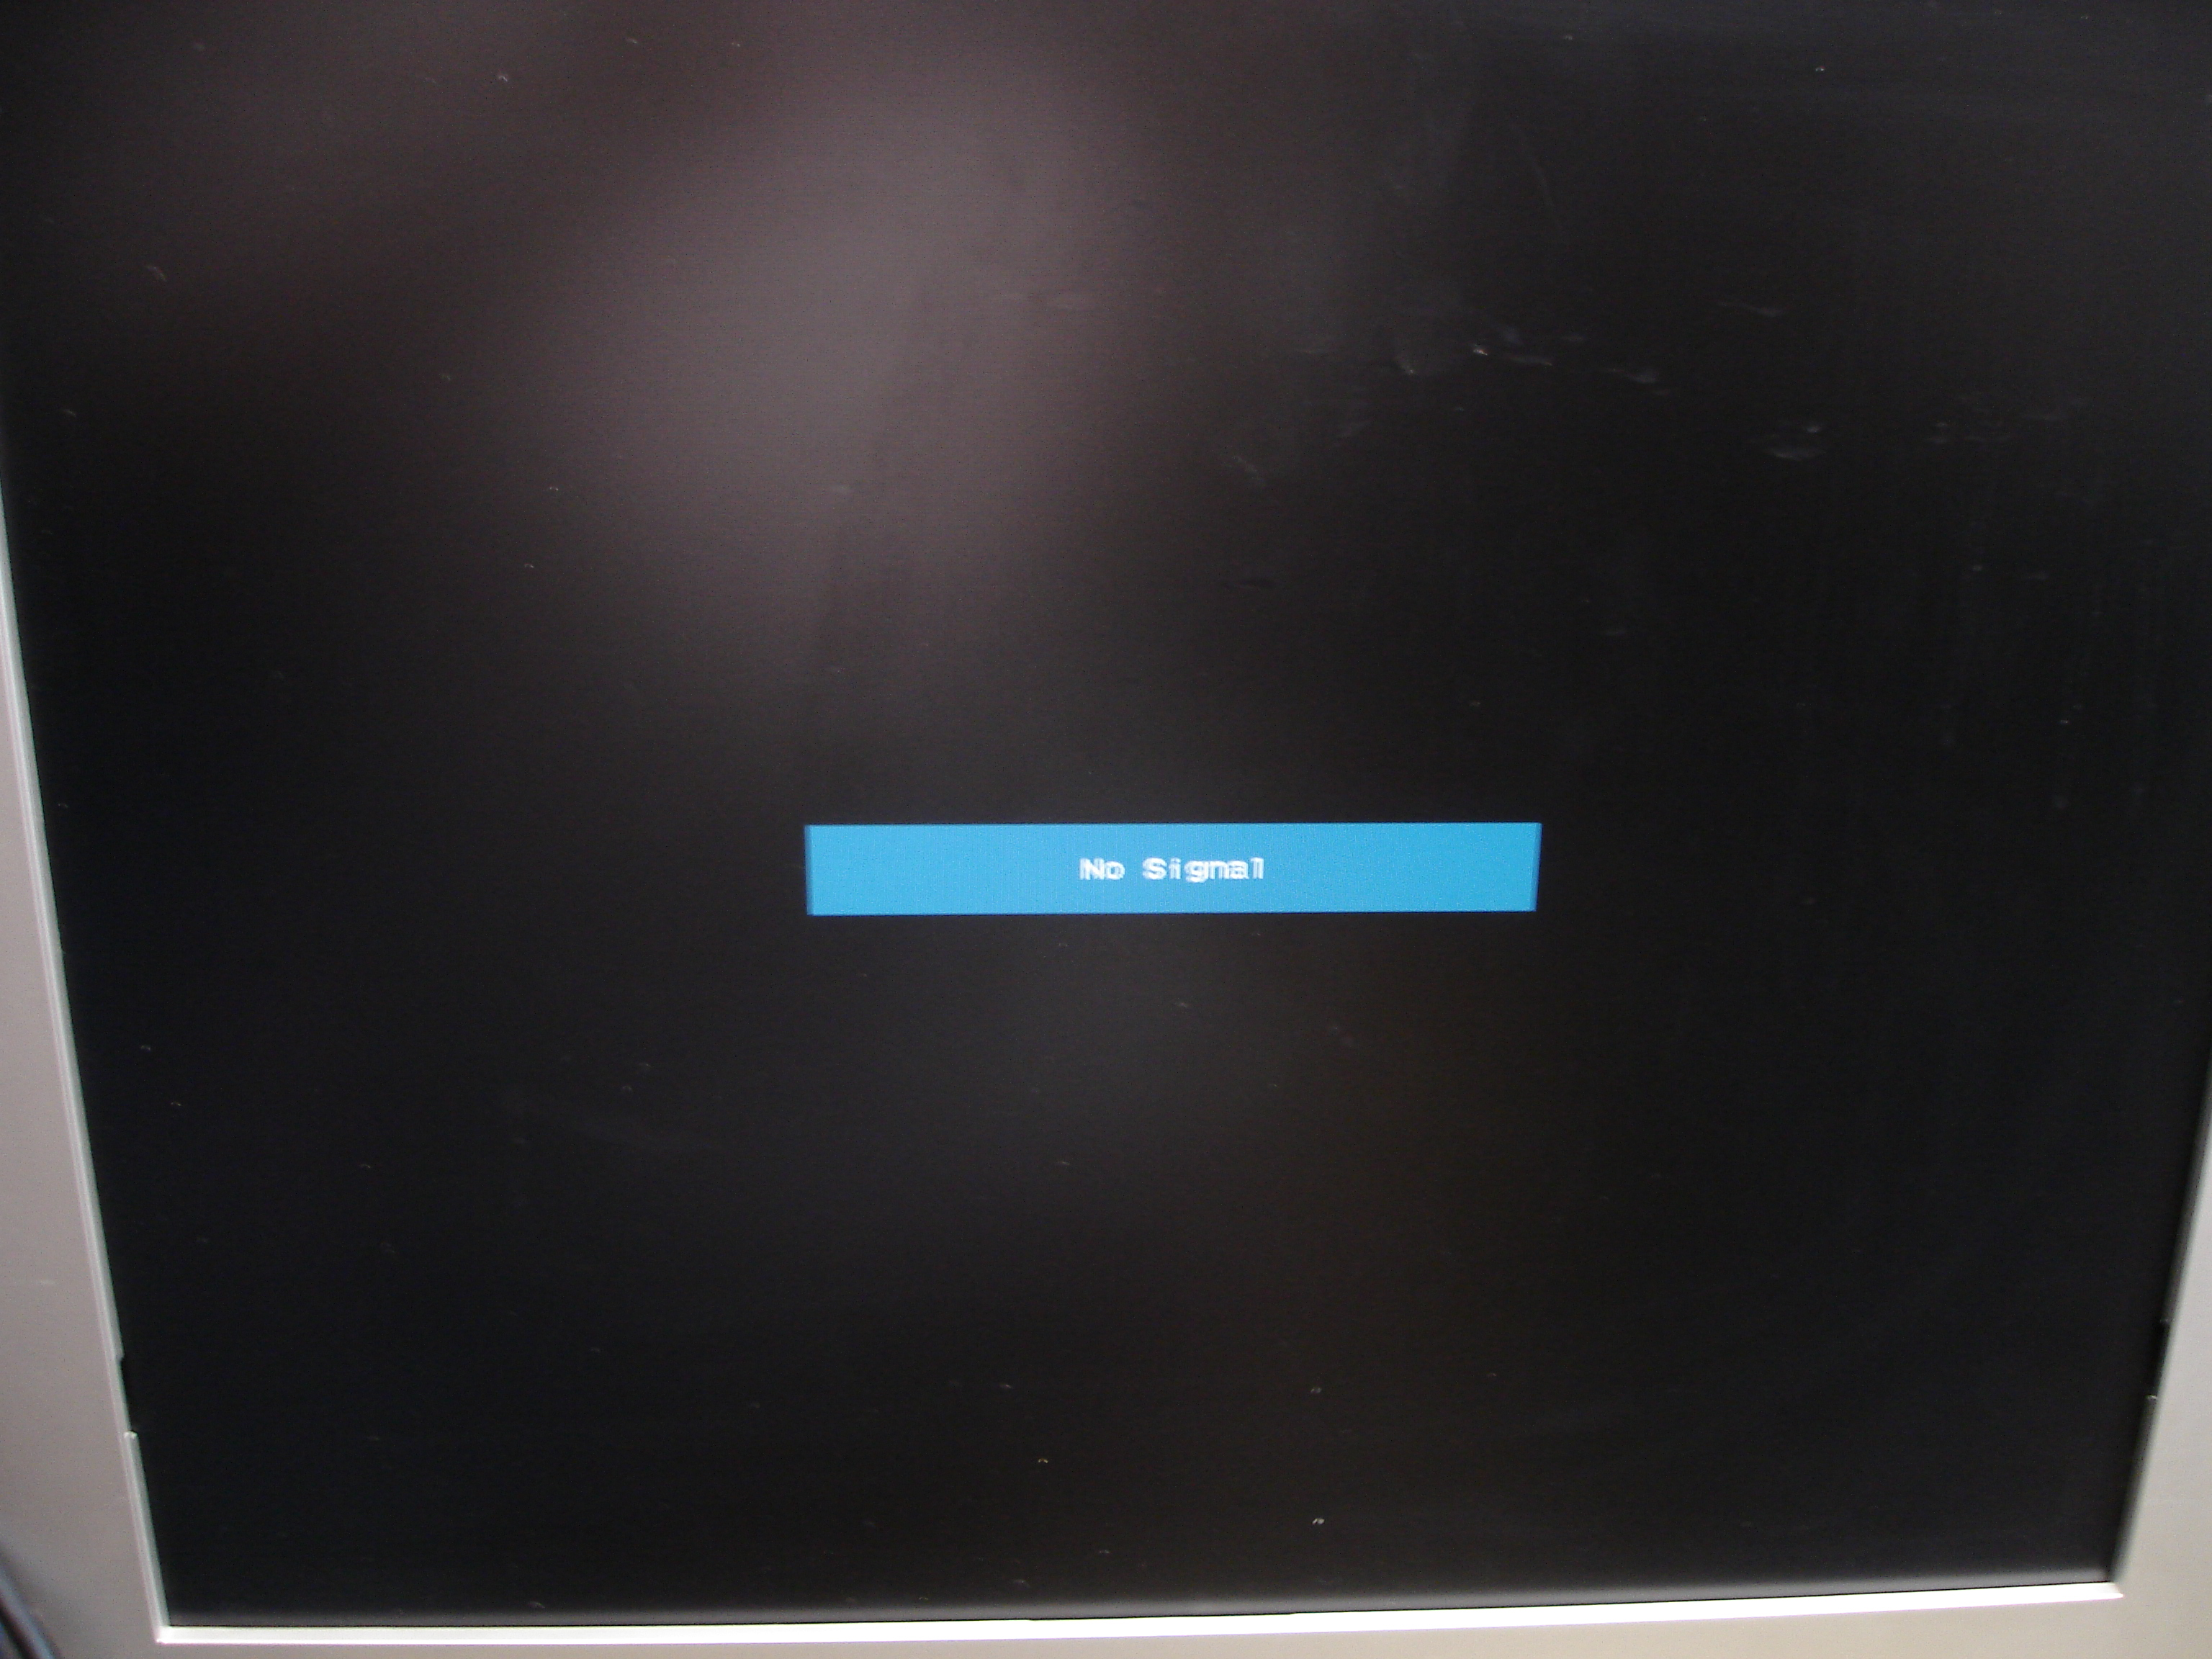 Replace LCD Backlight Inverter on Any Monitor for <$10 - Previously